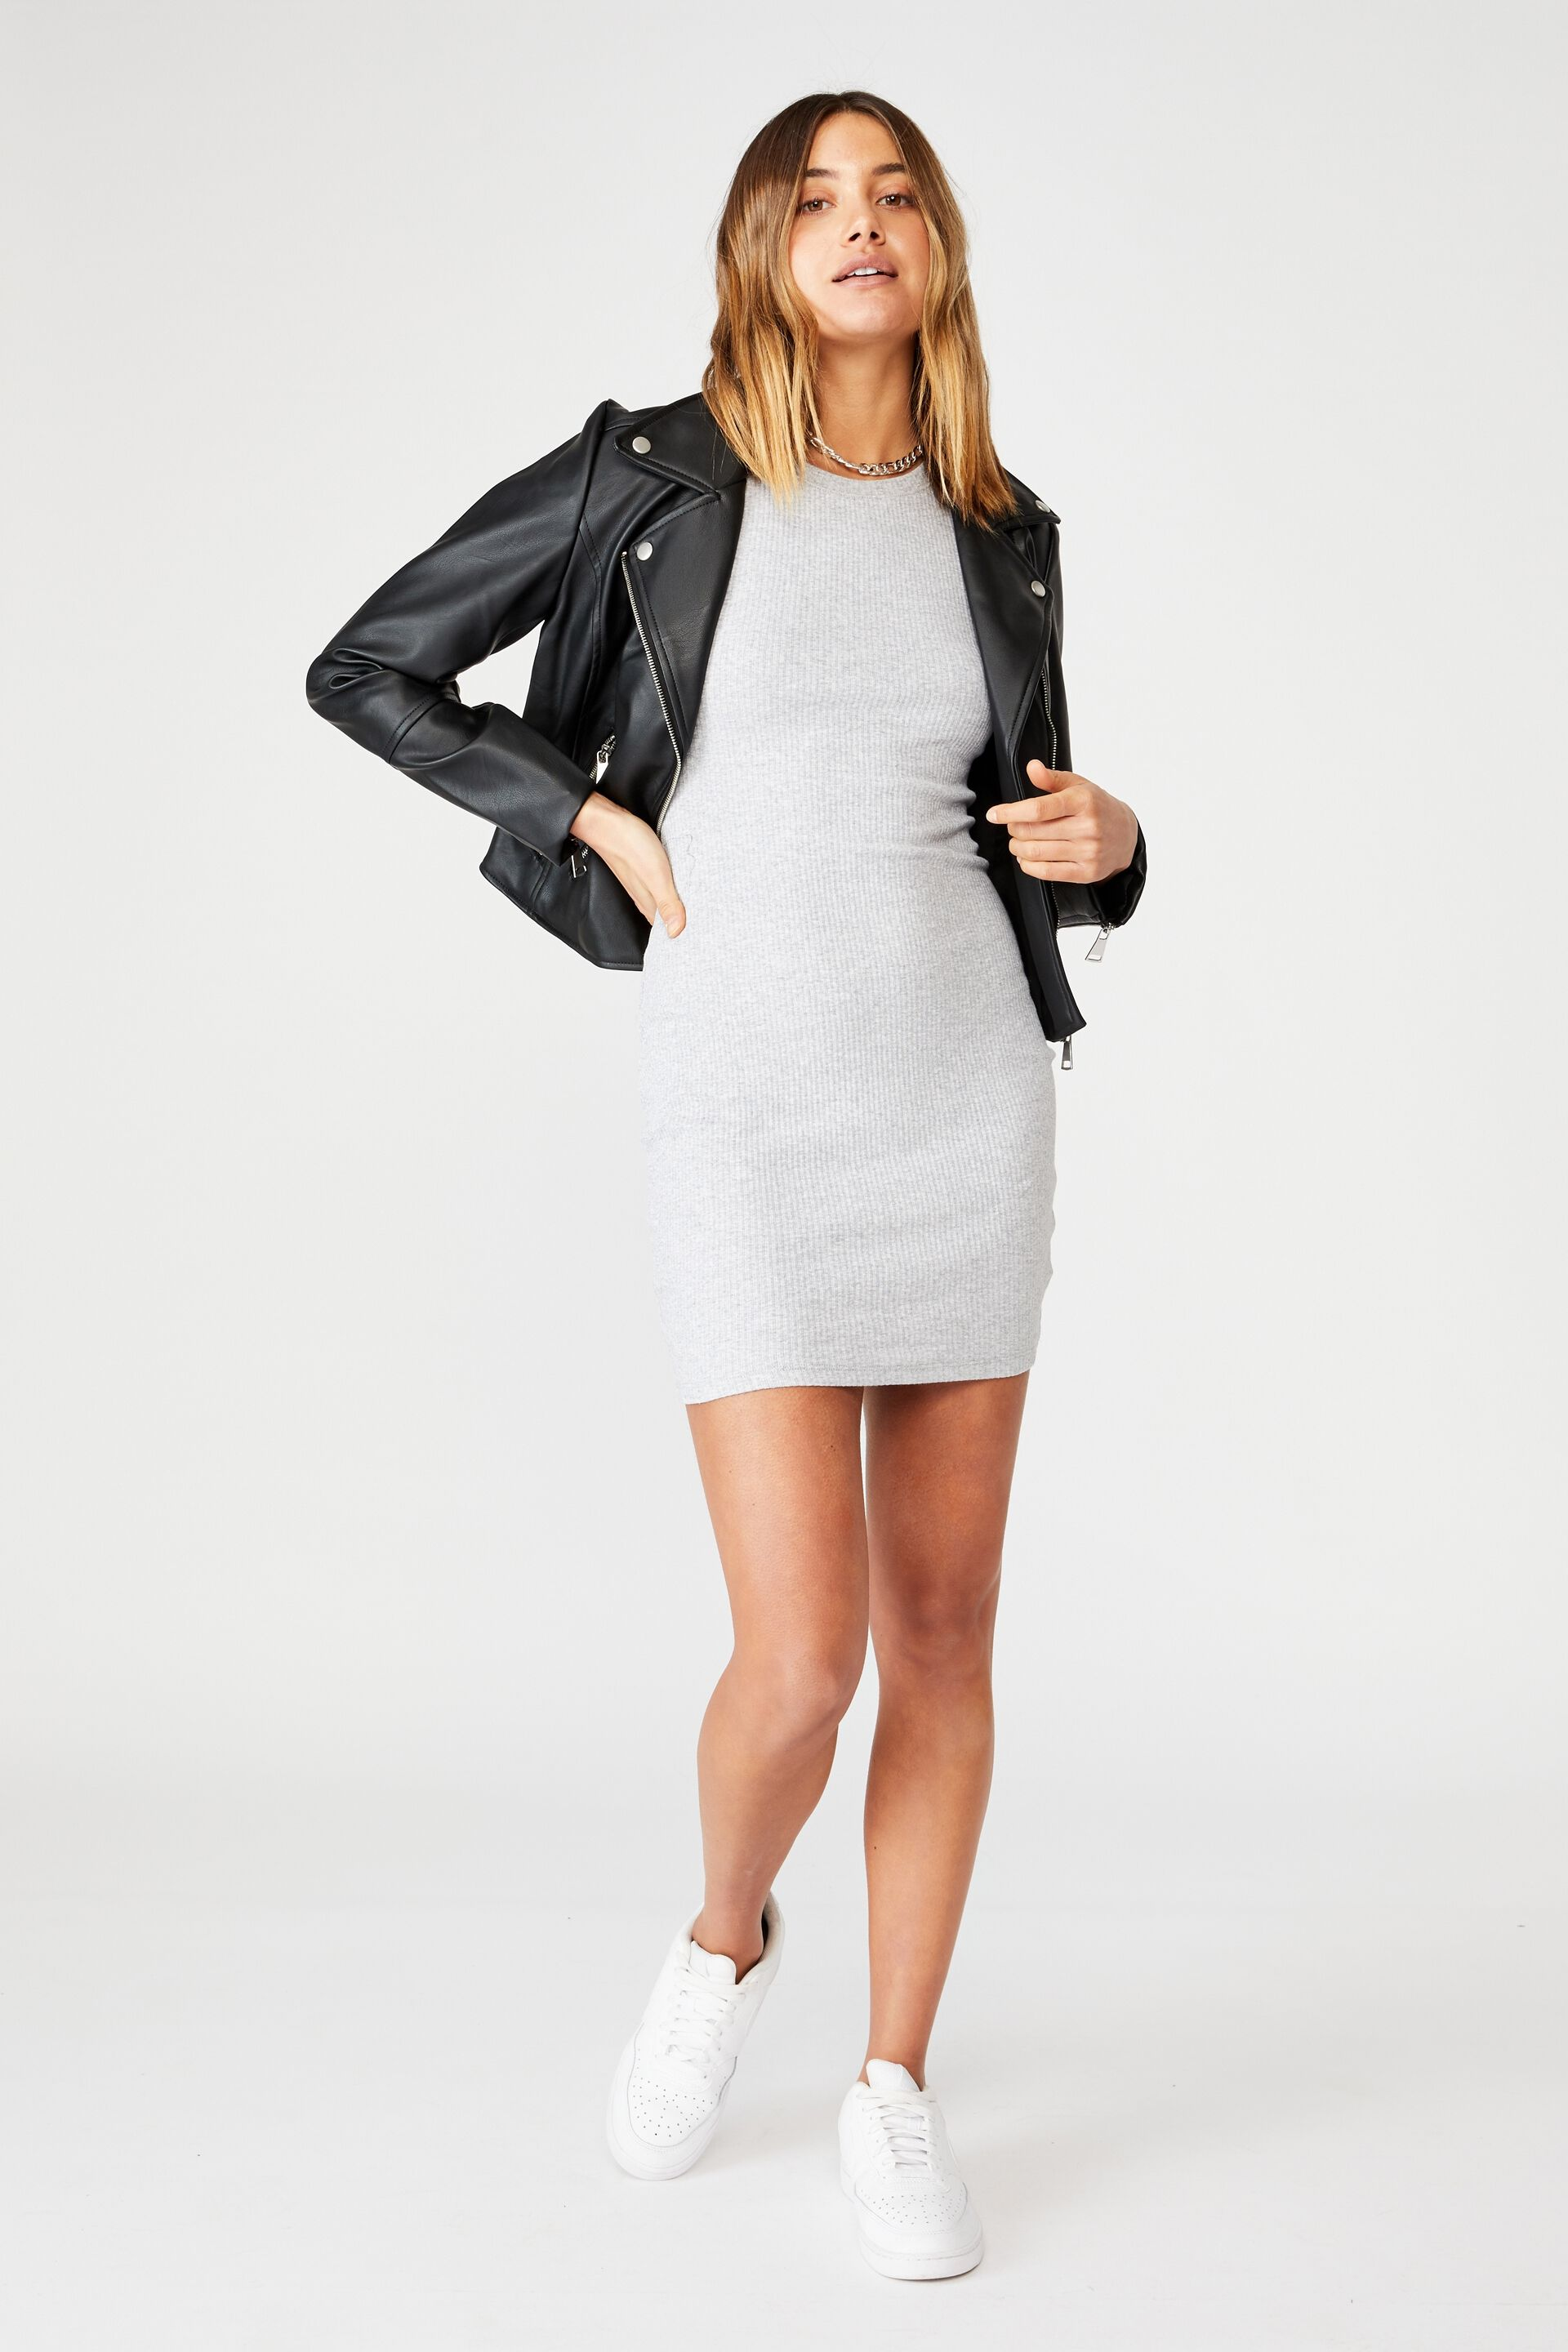 Grey Dress Casual Online Sale, UP TO 21 OFF